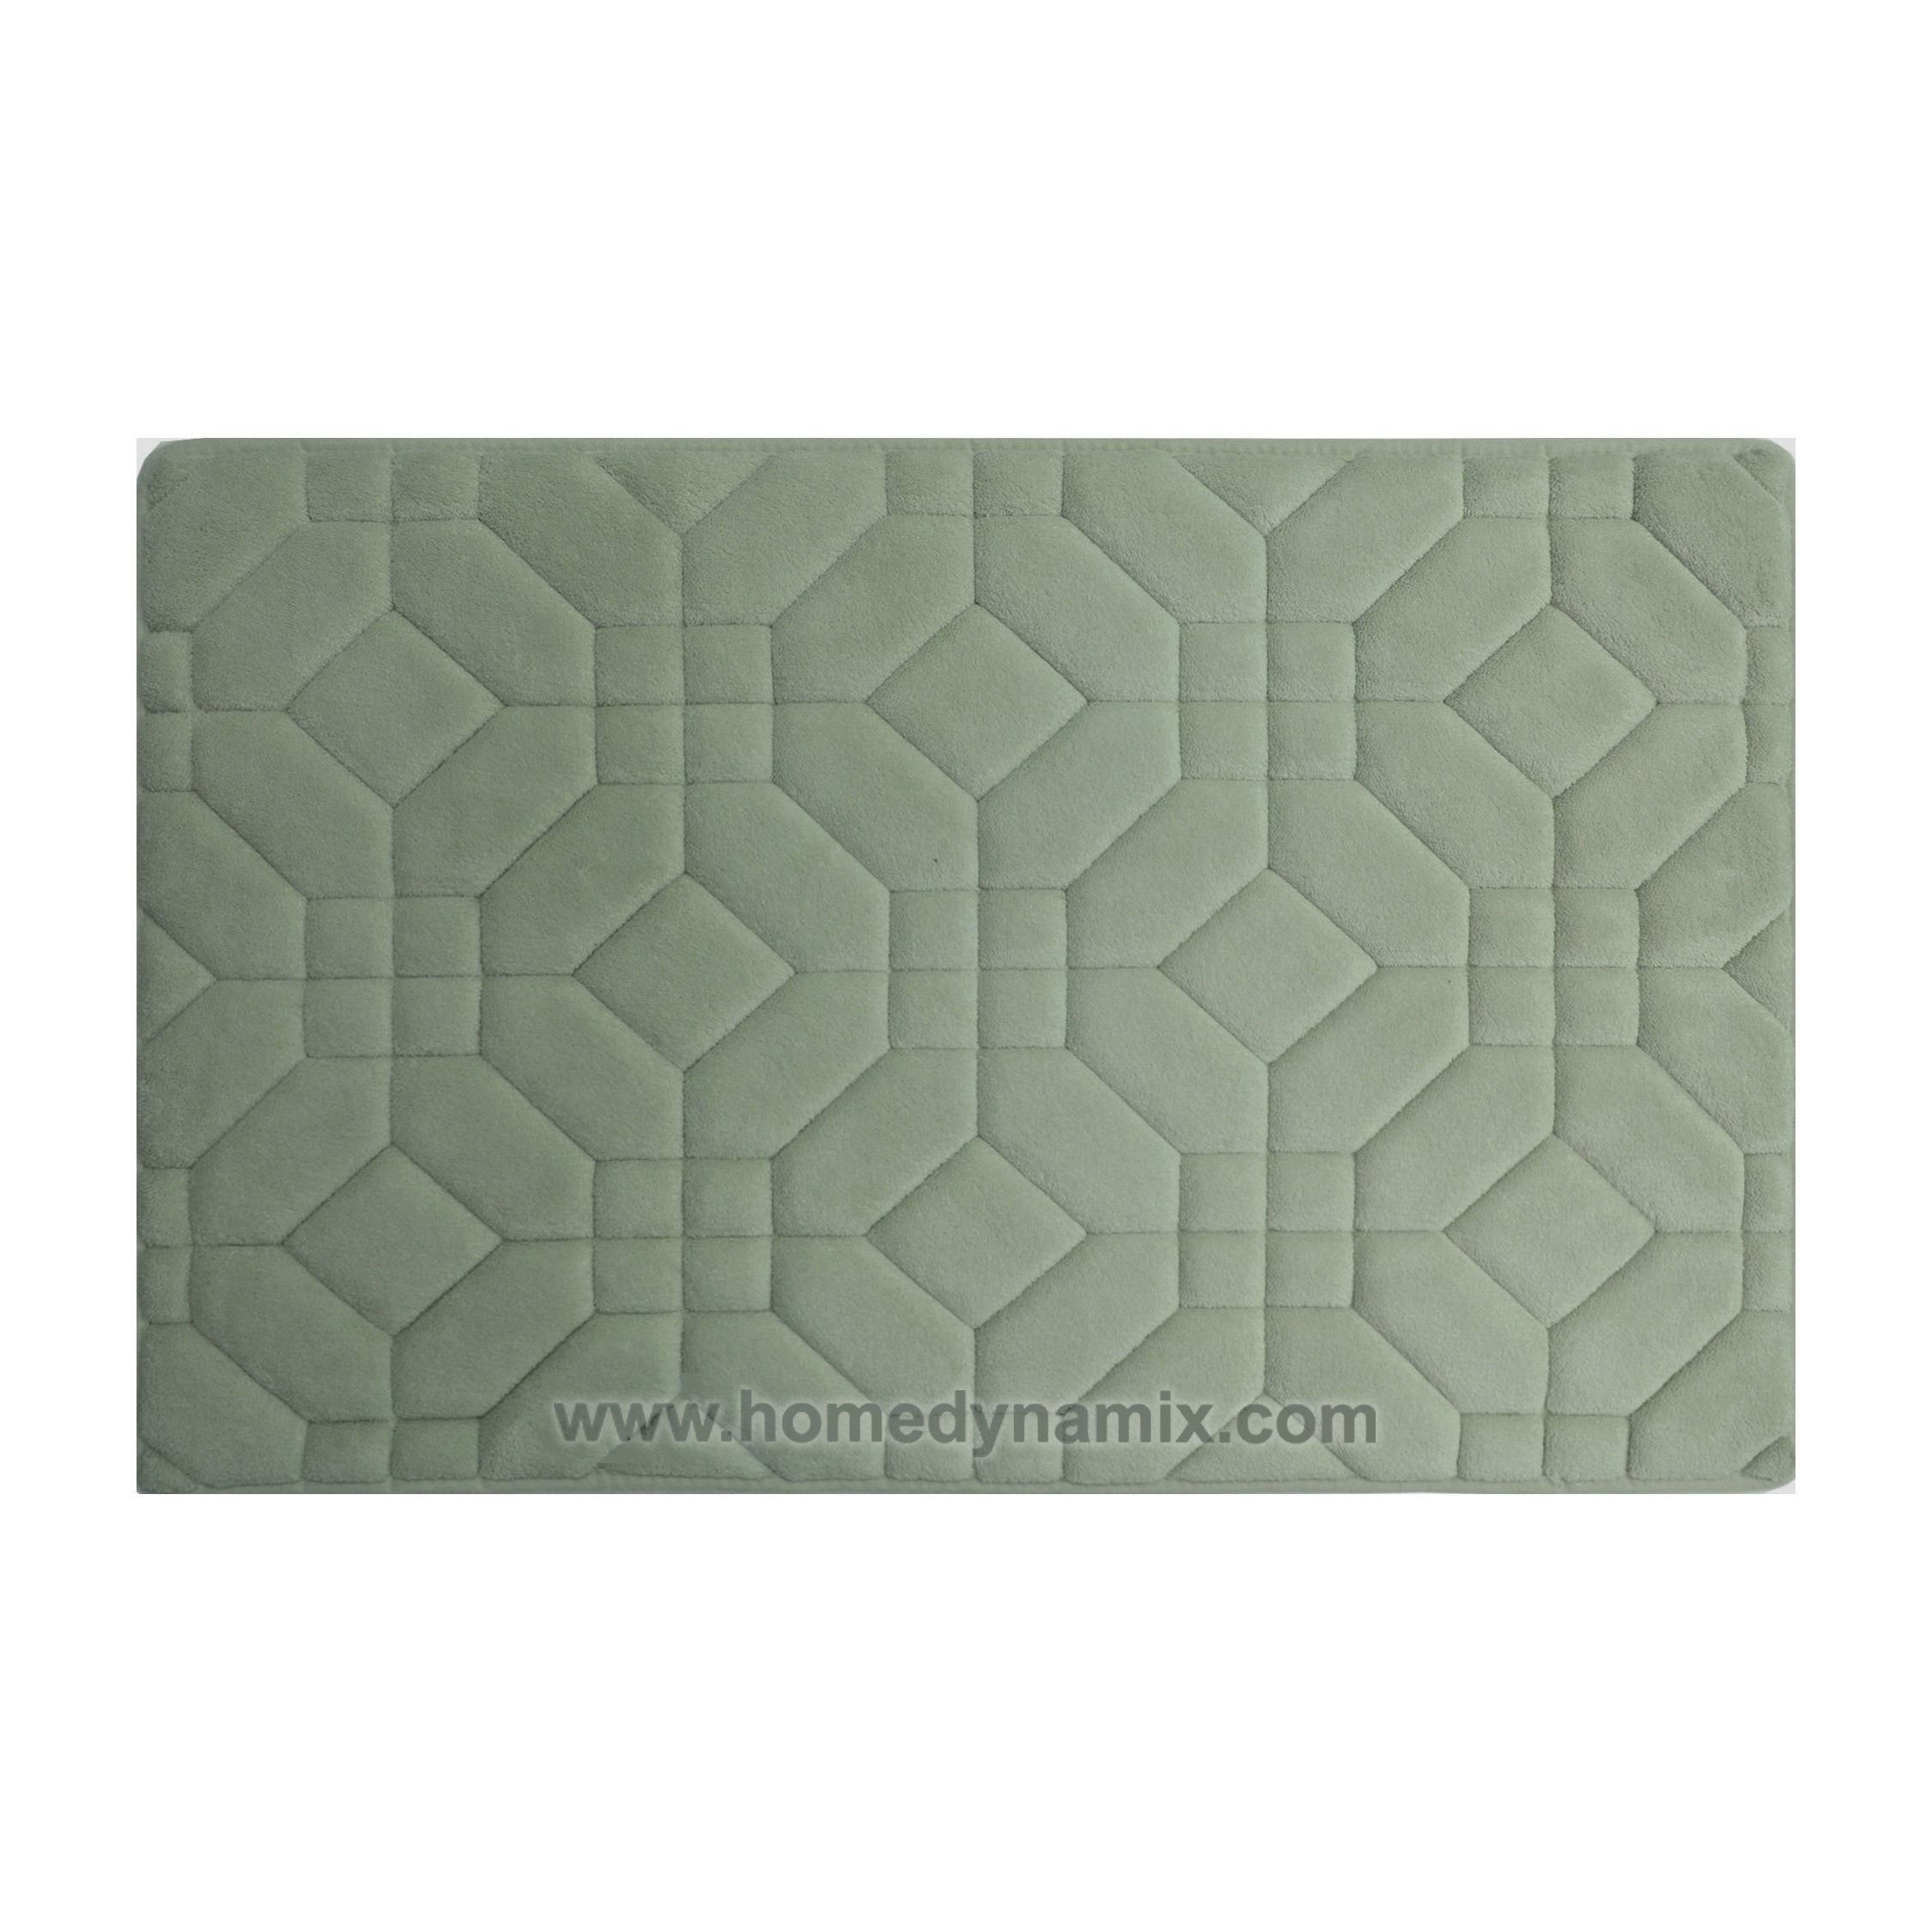 Dusty Mint Green Memory Foam Bathroom Mat/rug : Day Spa Tiles Design, Soft and Absorbent, Non-skid Backing (17'' x 24'' 2-Piece Set)